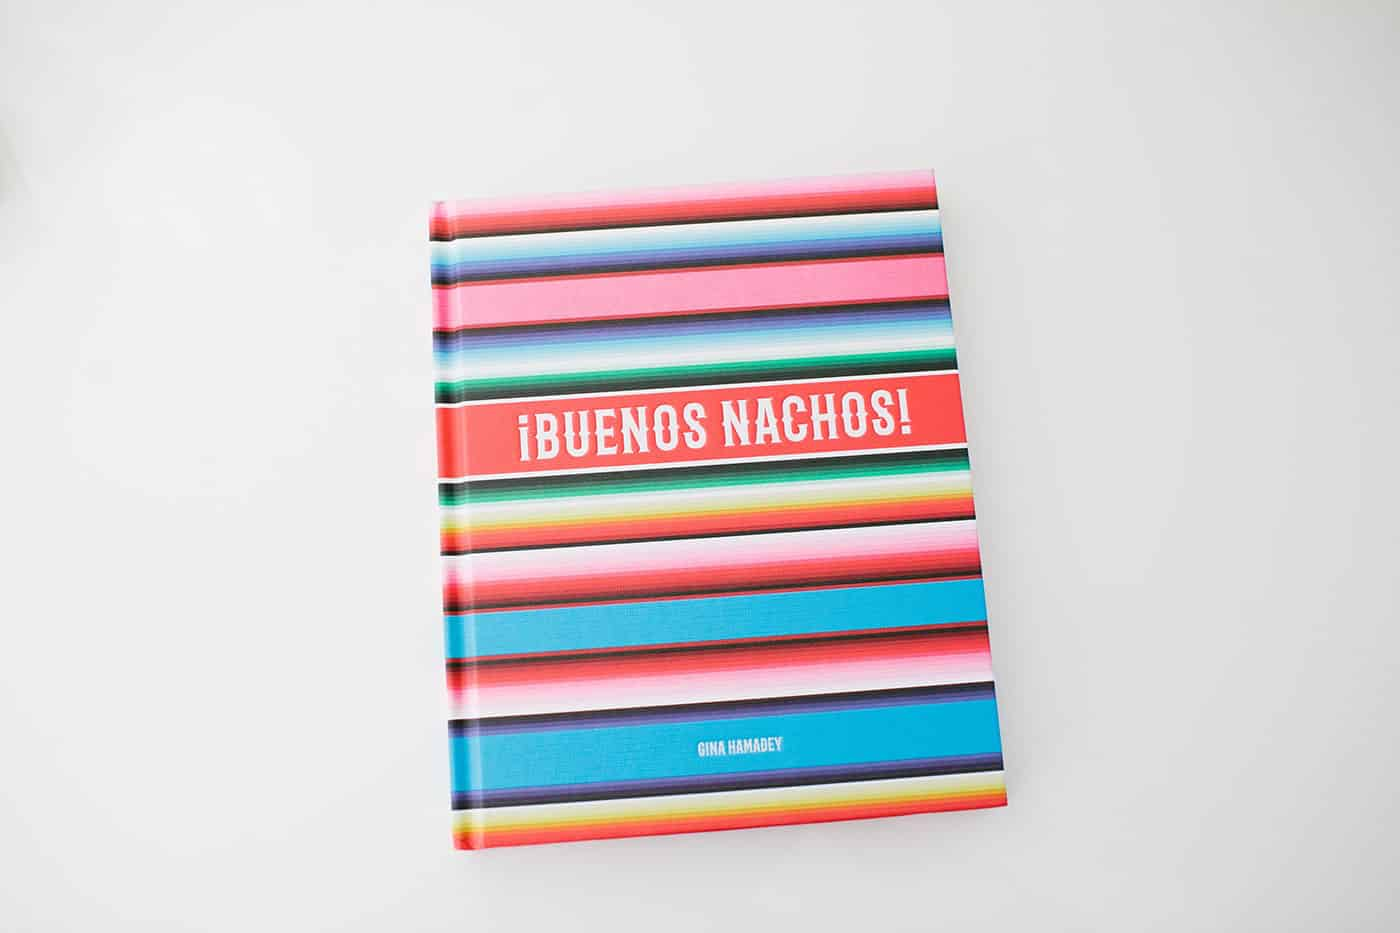 Tiffani Thiessen's Holiday Gift Guide 2016: For the chef, home cook or nacho lover: Buenos Nachos Cookbook